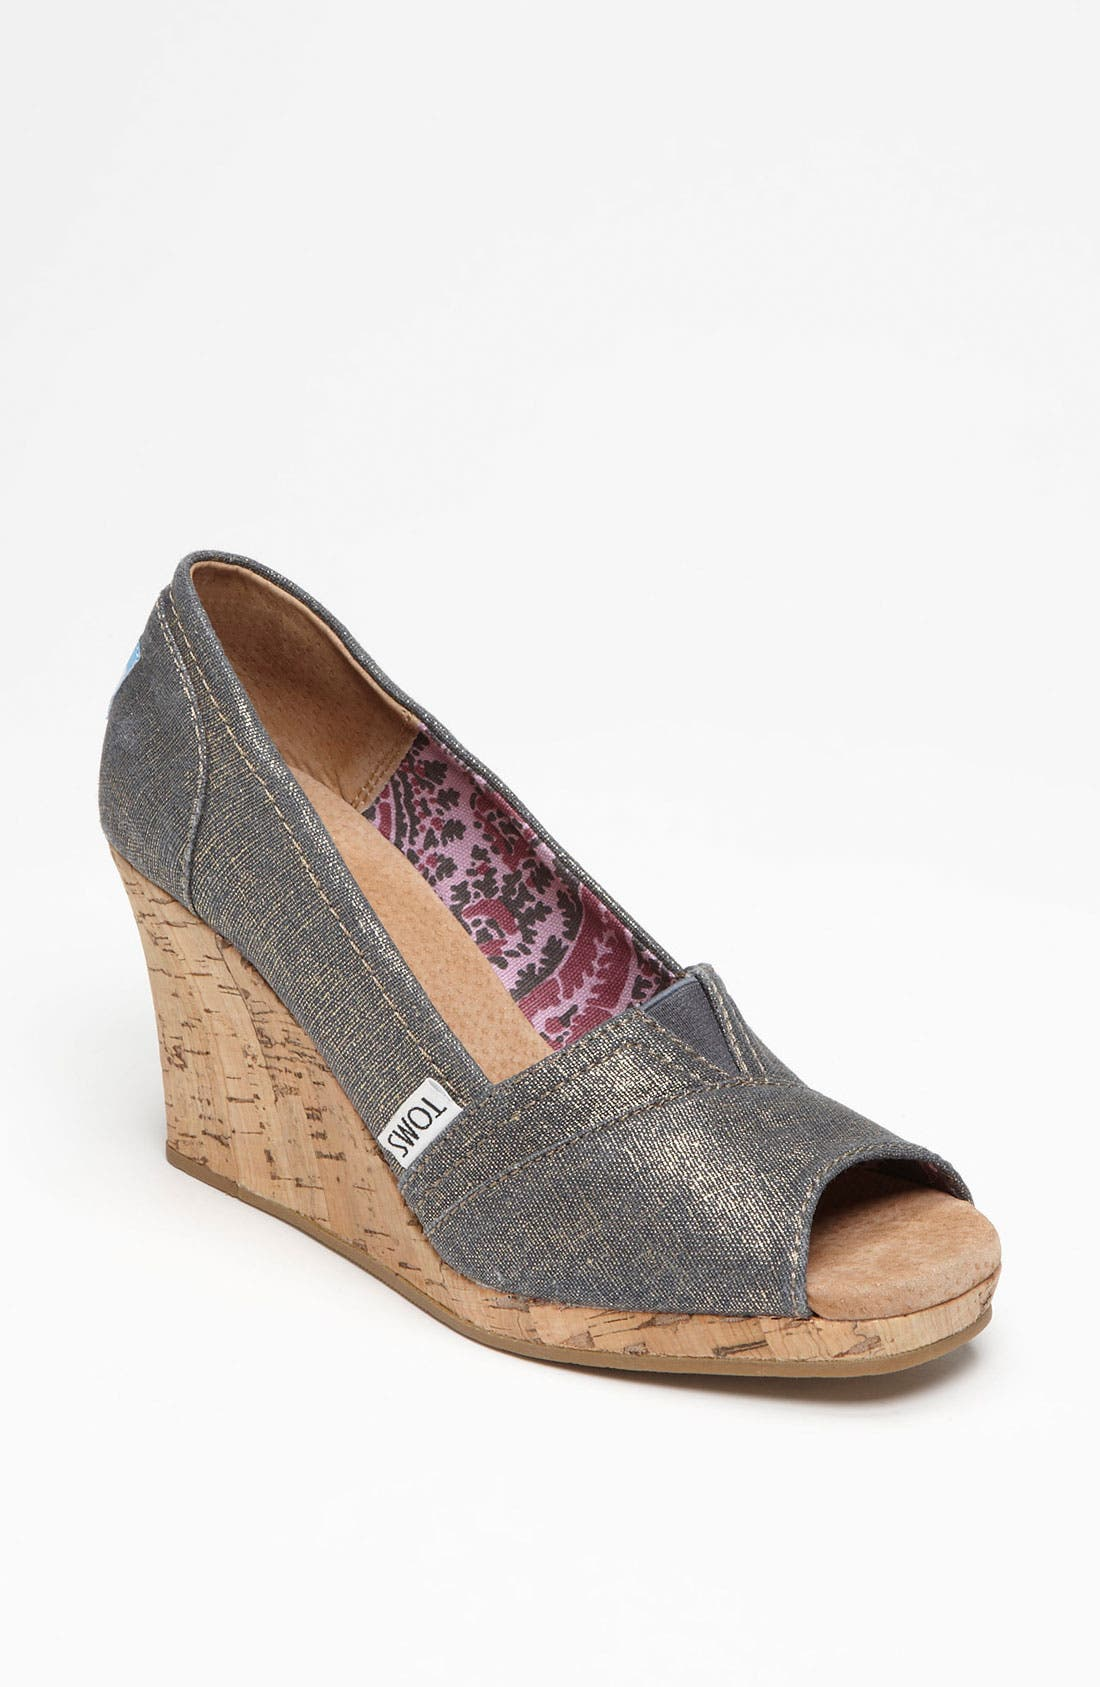 Main Image - TOMS 'Azar' Wedge